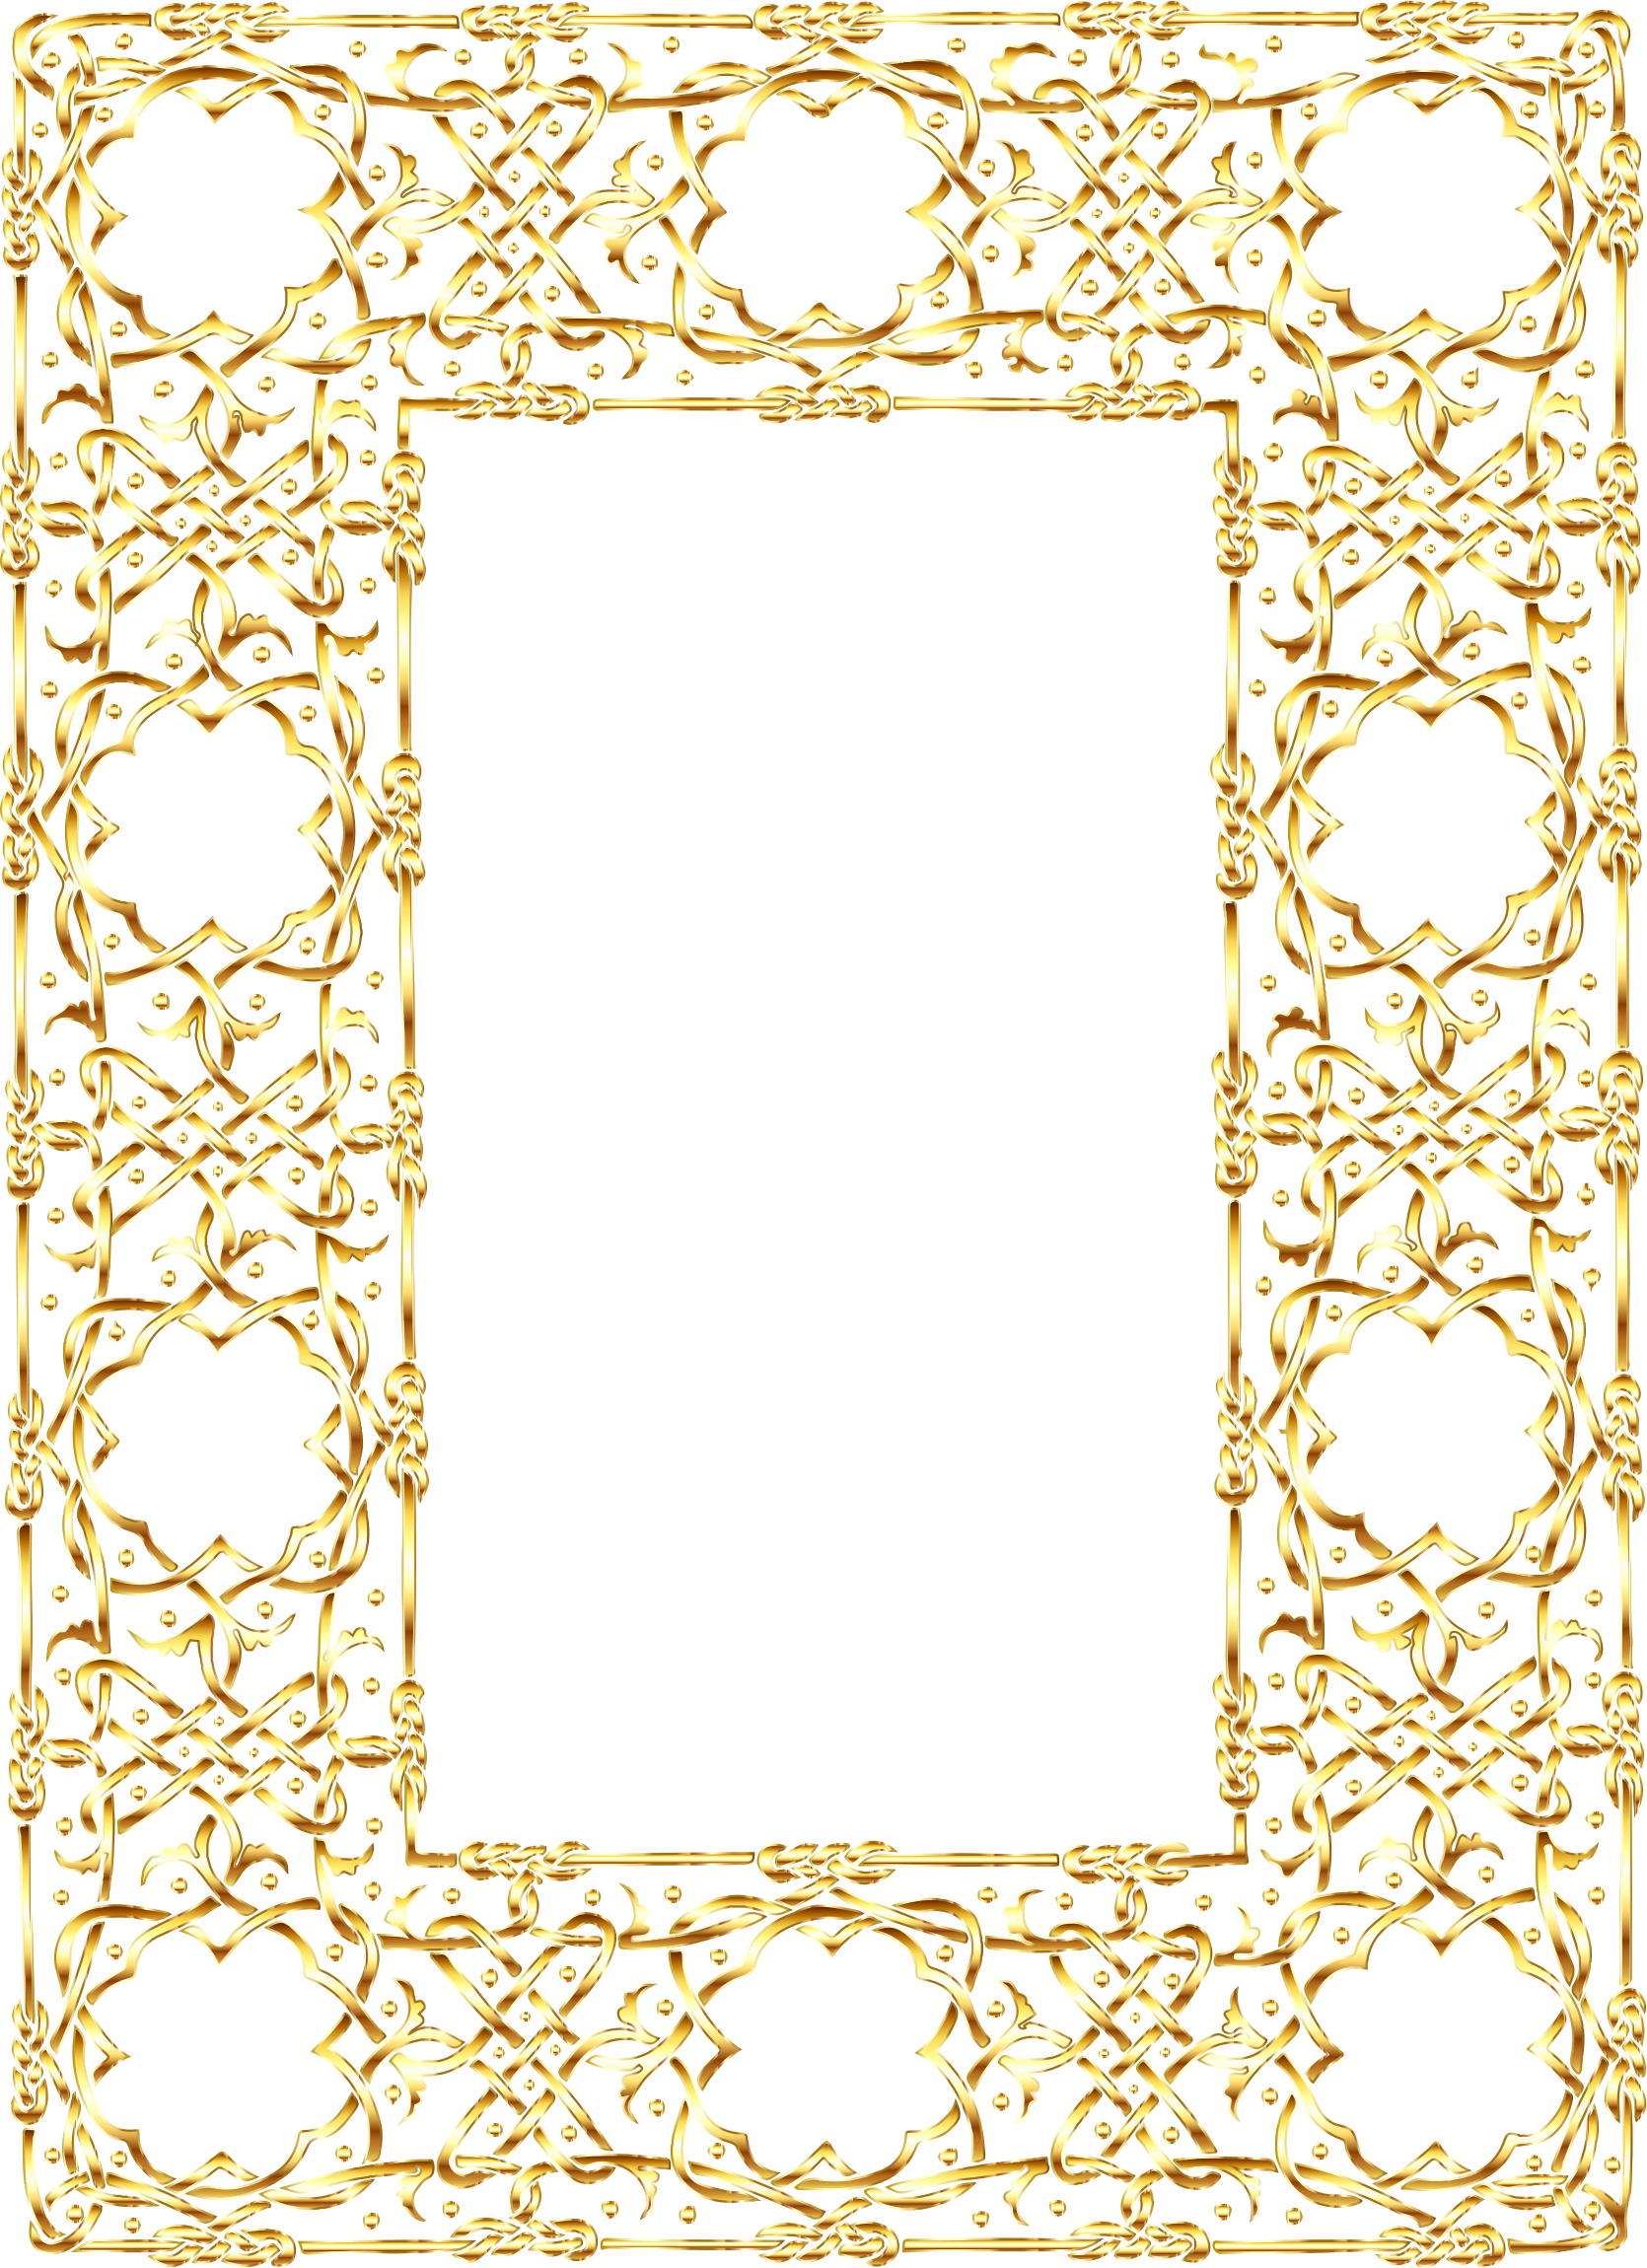 Gold Ornate Geometric Frame 2 No Background by GDJ